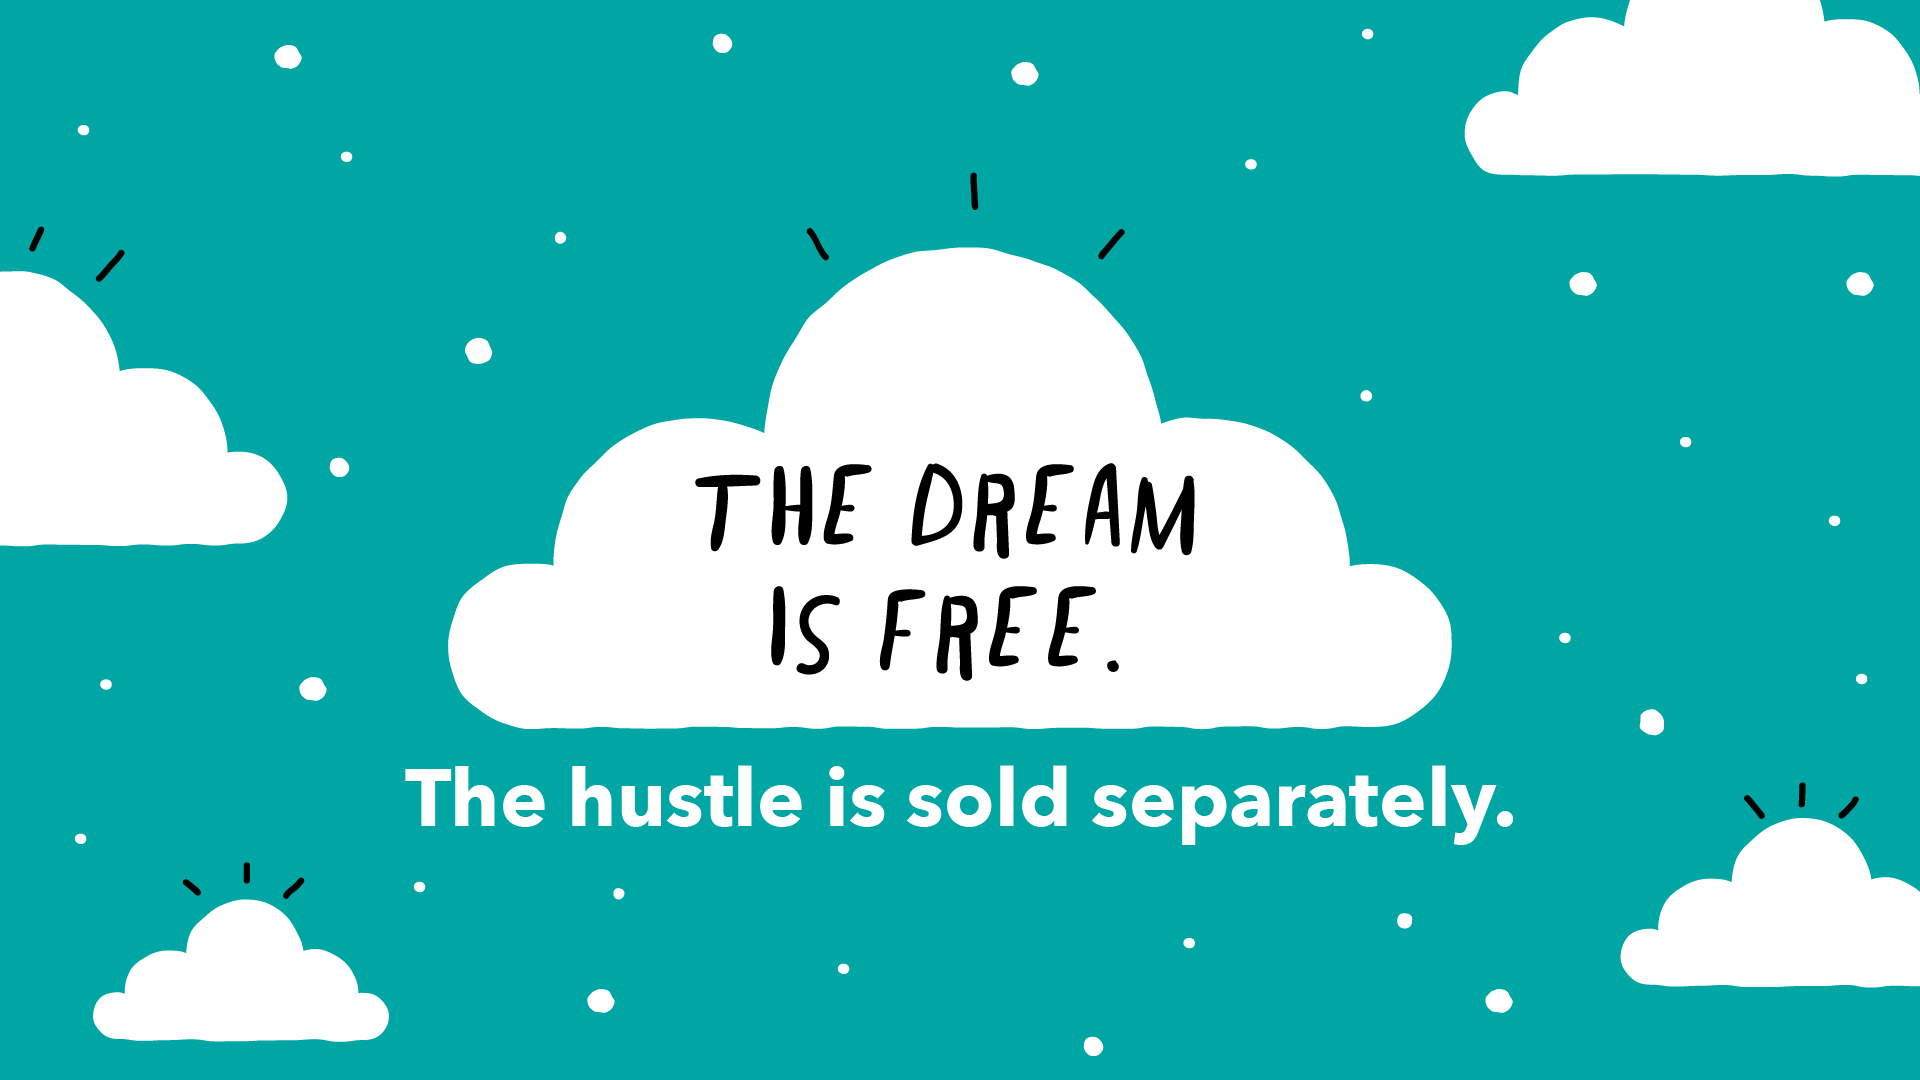 Motivational Wallpapers To Inspire Your Day